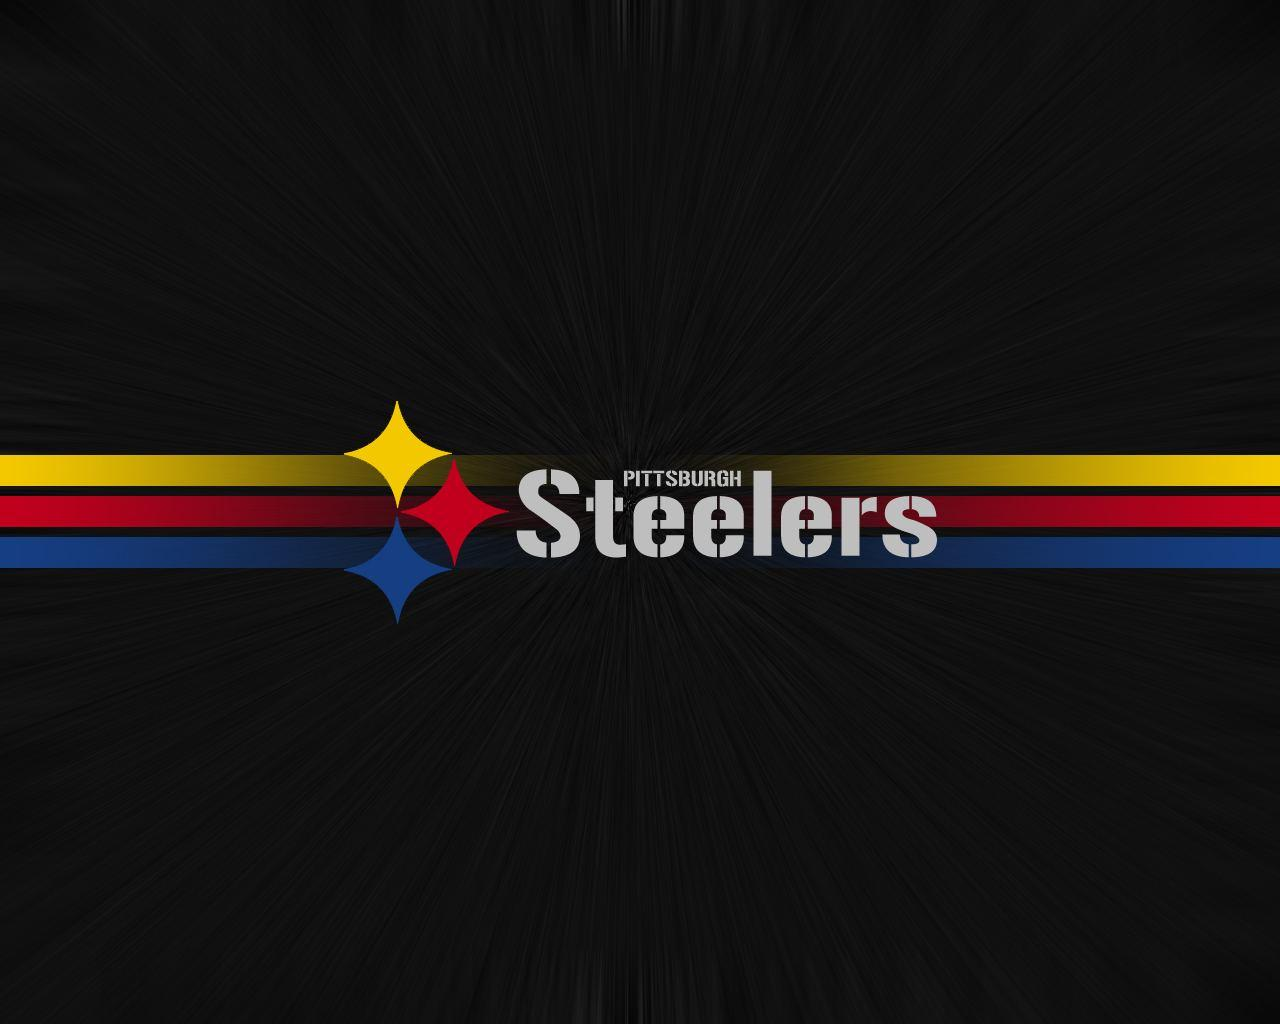 Pittsburgh Steelers wallpapers hd free download